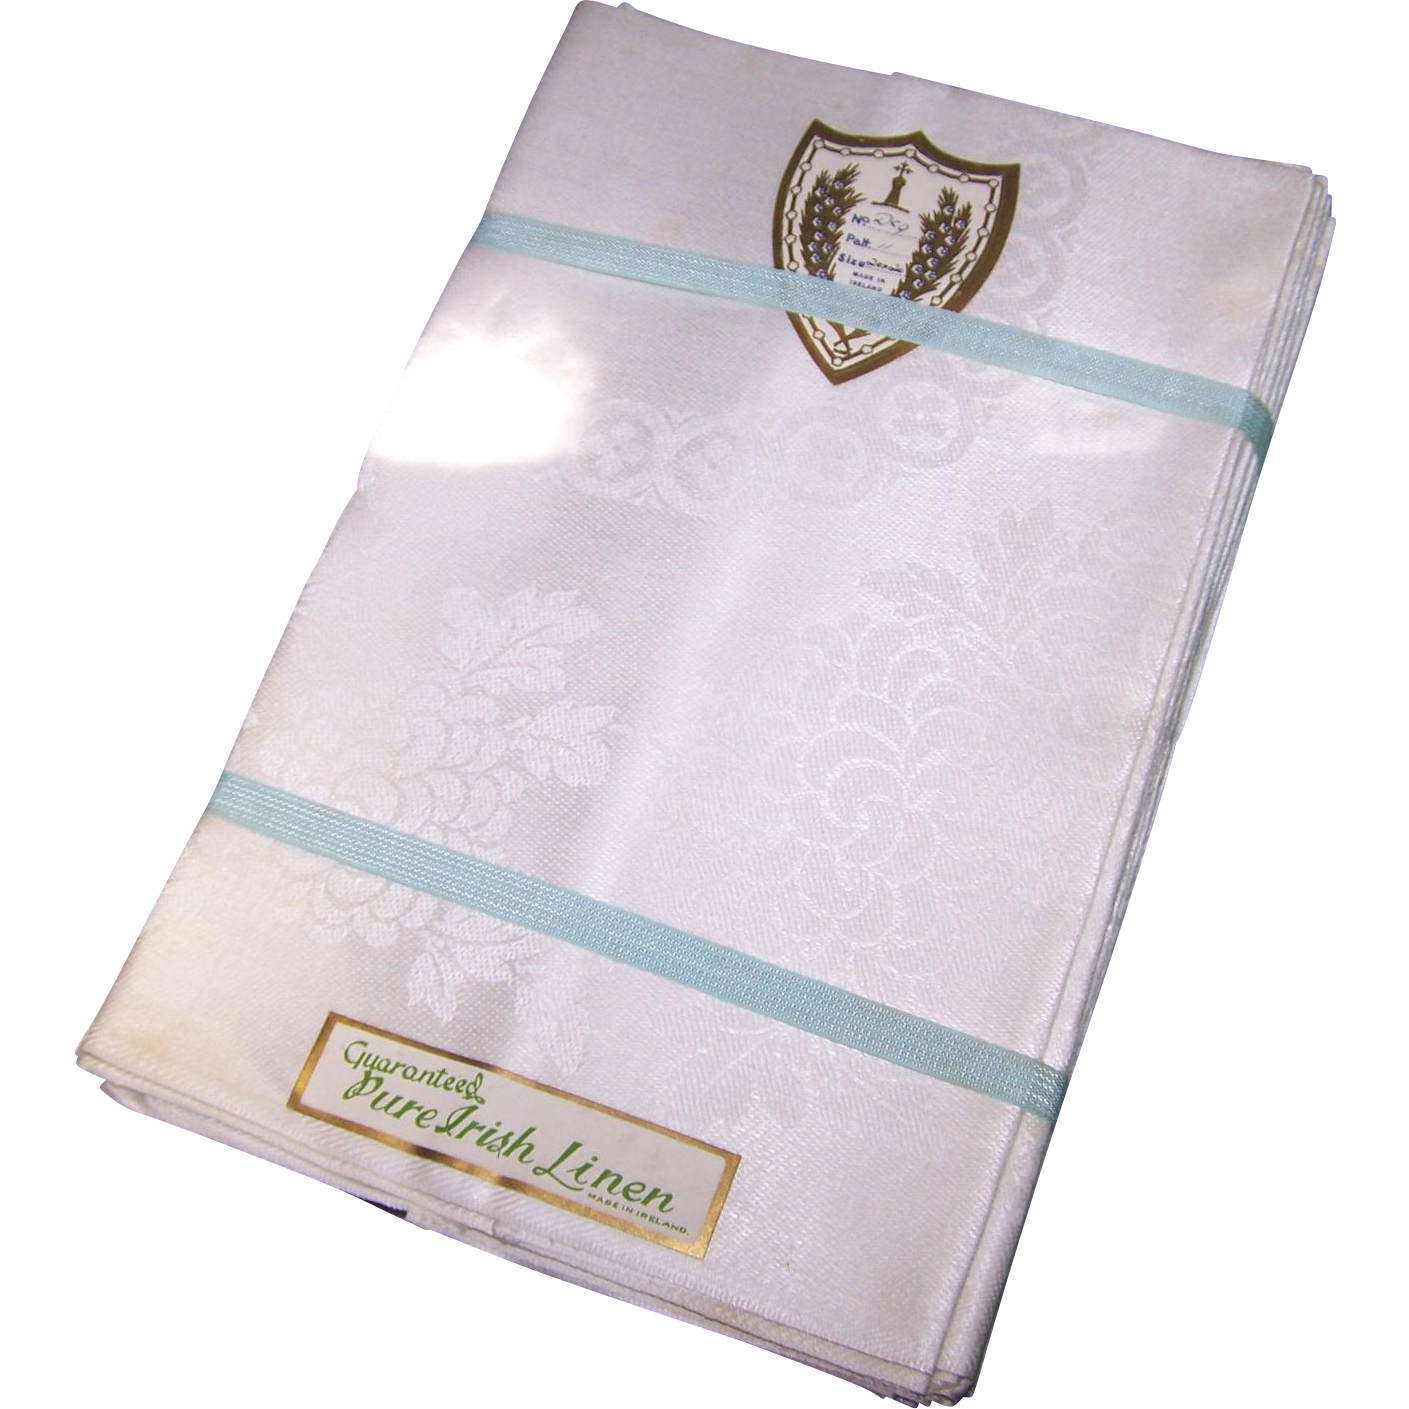 Guaranteed Pure Irish Linen Made in Ireland Chrysanthemum Pattern Hemmed Napkins In Original Paper